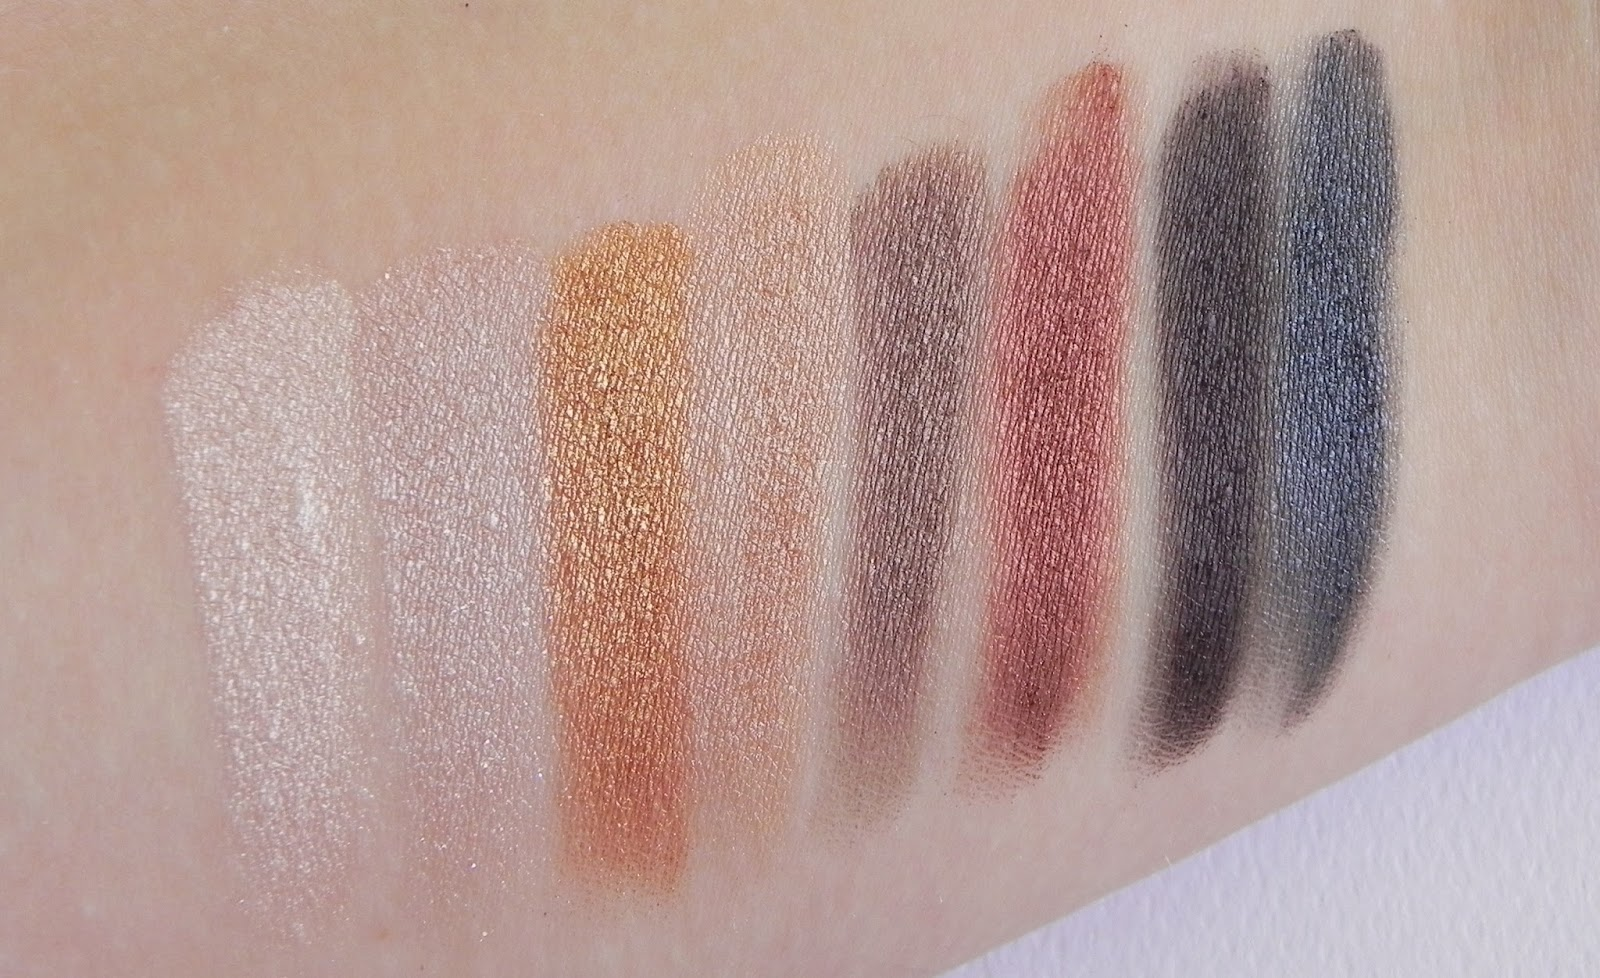 lorac pro makeup palette eyeshadow eyeshadows review swatches beauty shimmery